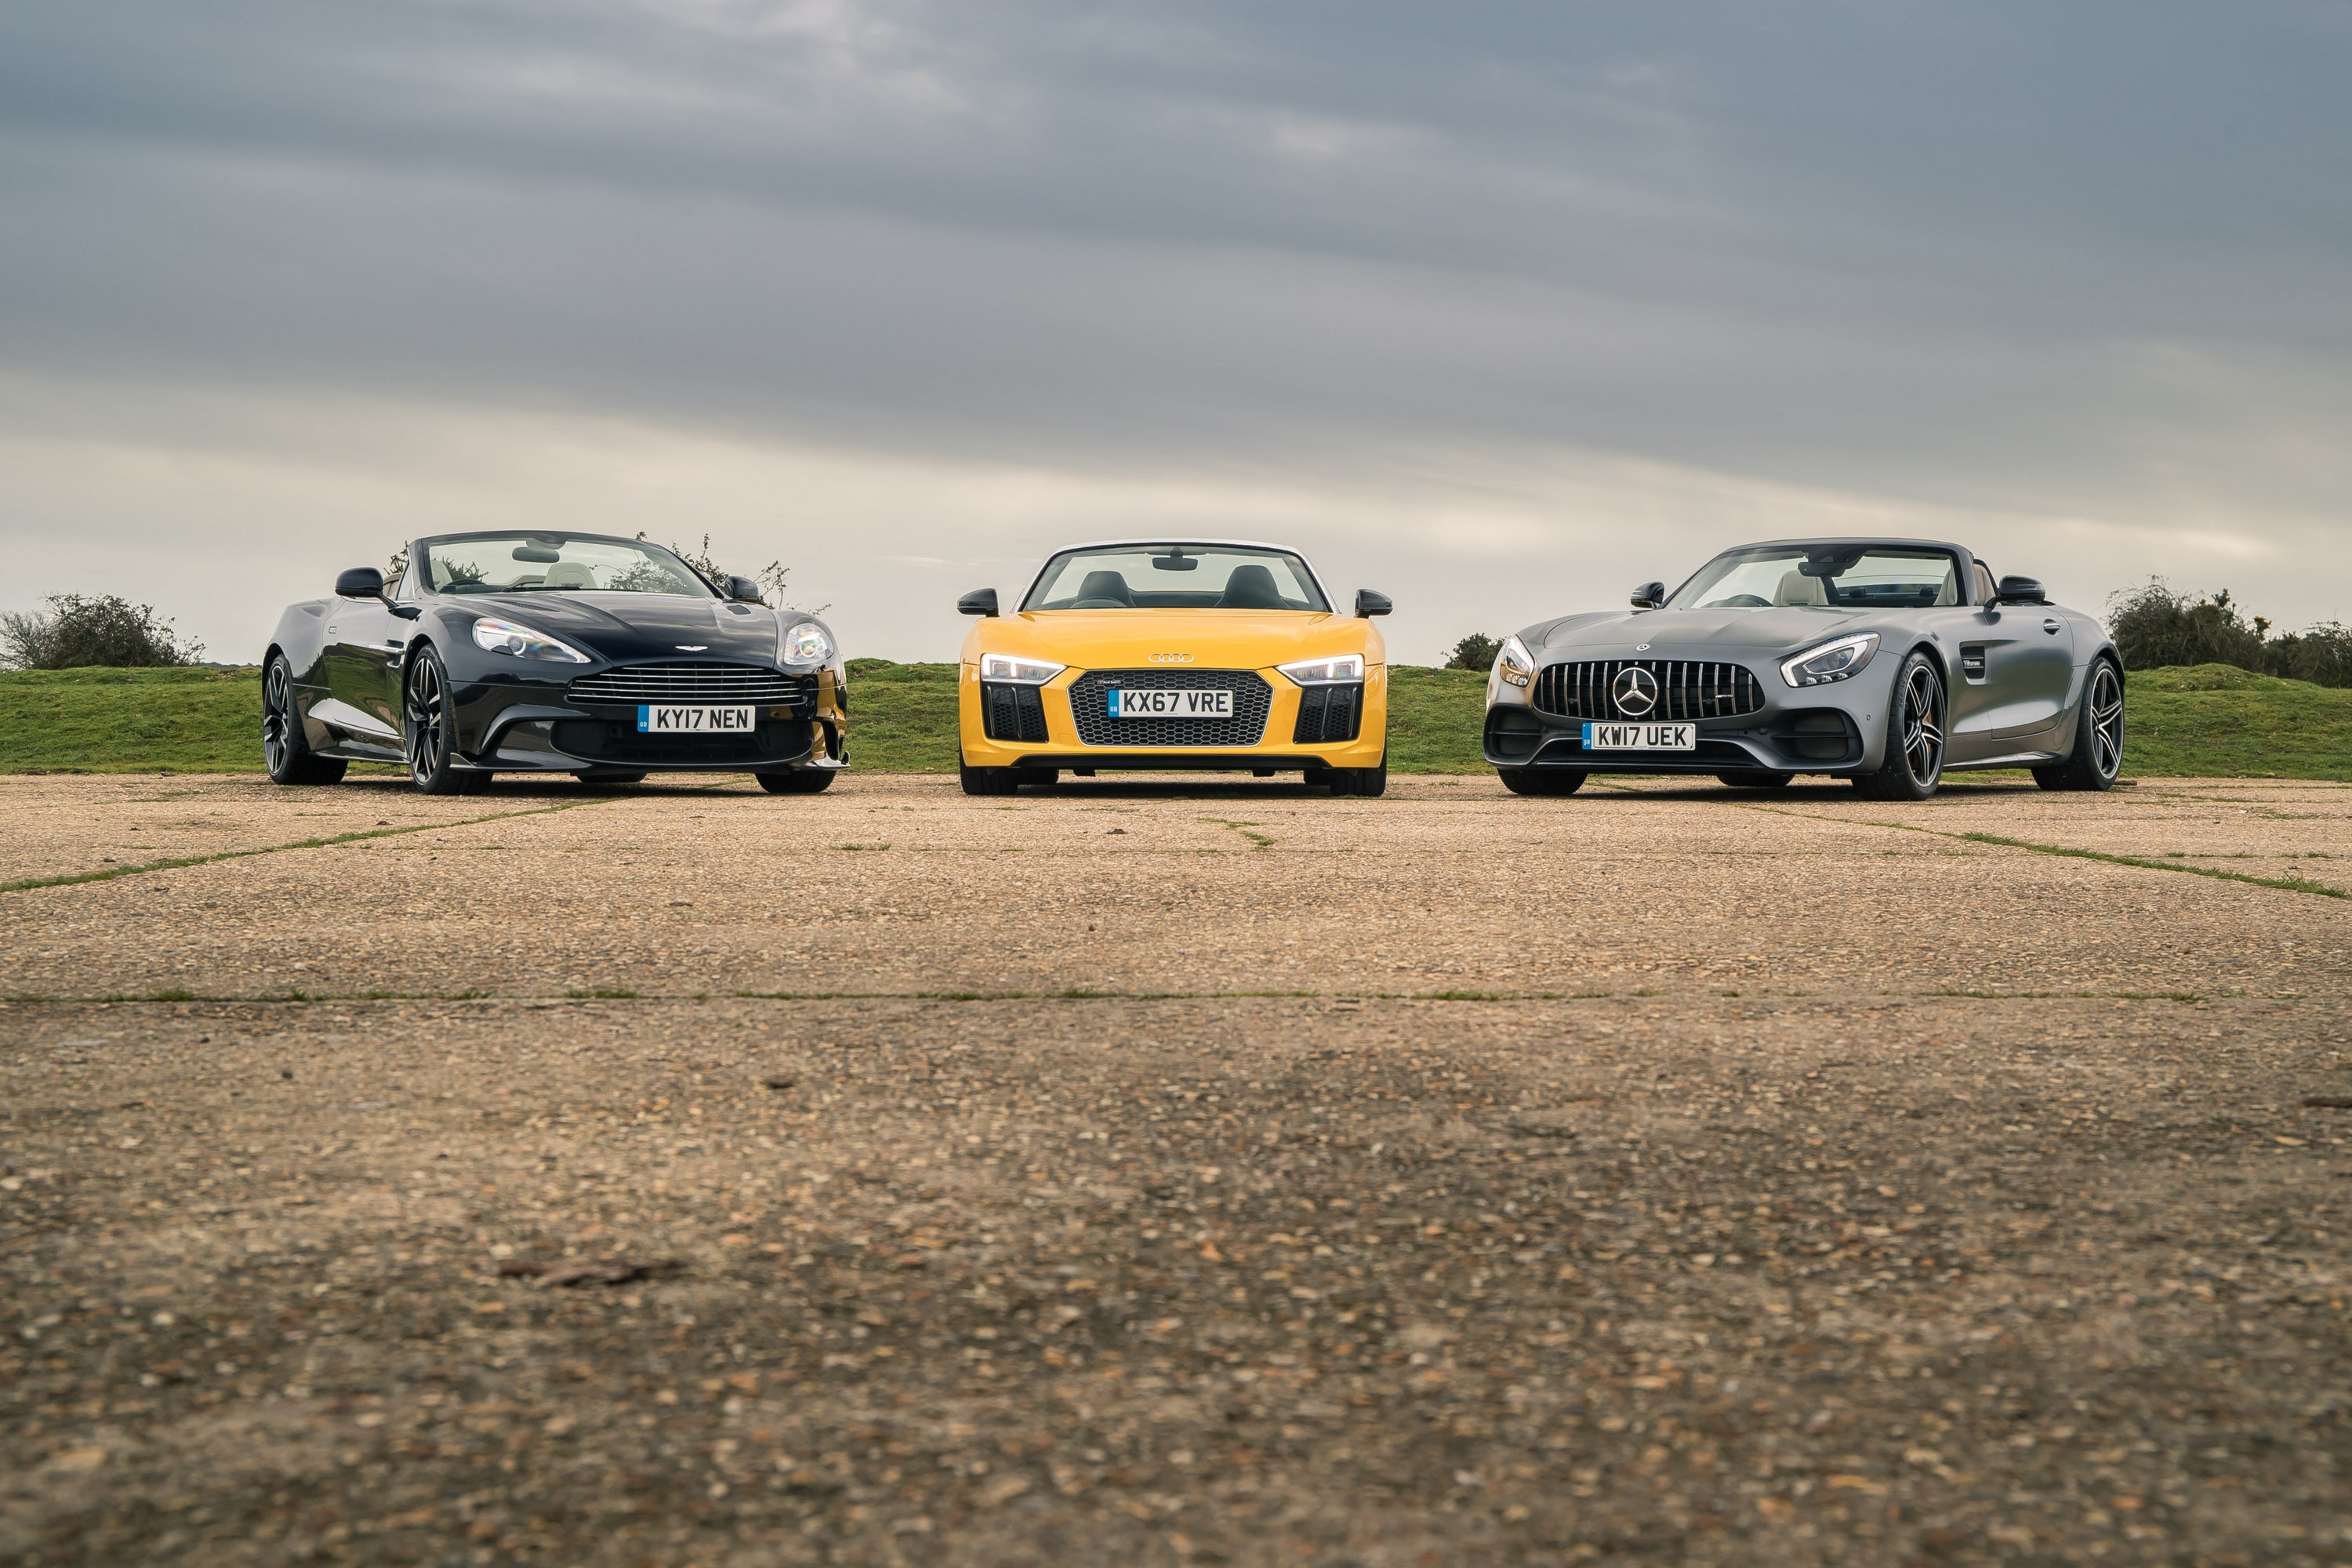 Aston Martin Vanquish S Volante, Audi R8 Spyder V10 Plus and Mercedes-AMG GT C Roadster lined up